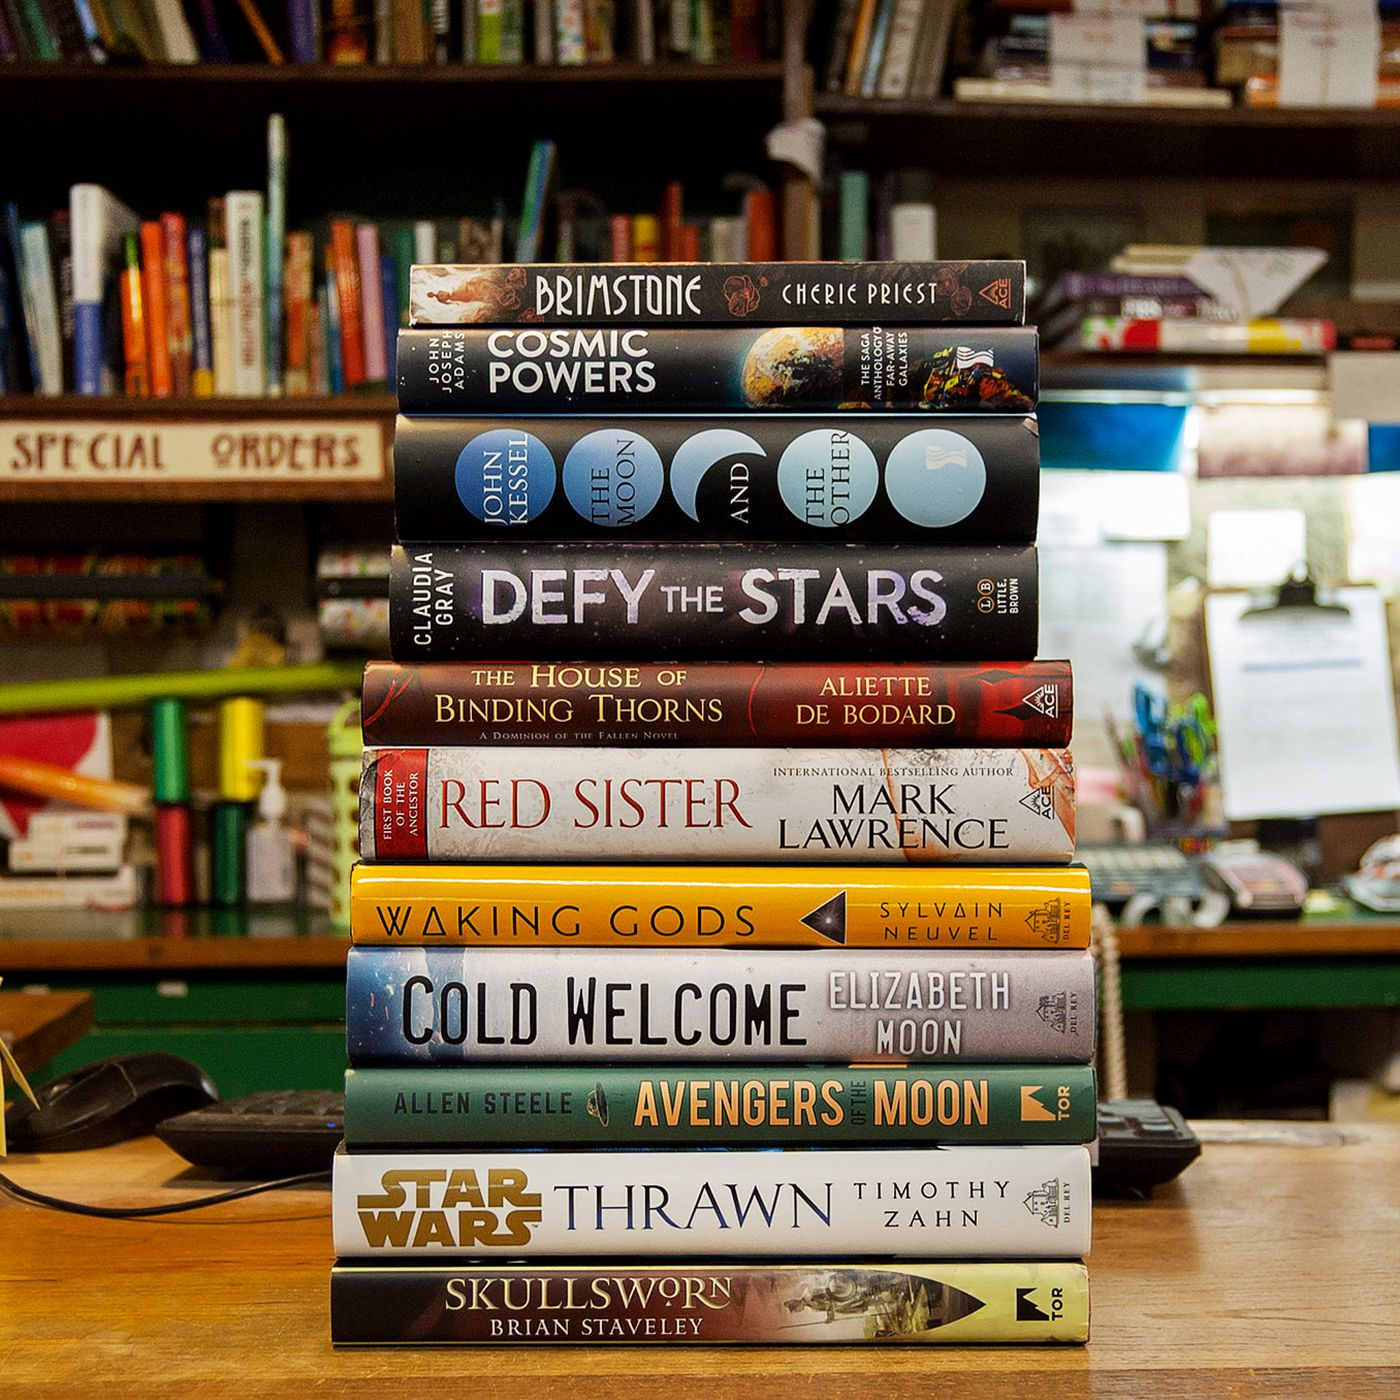 39 science fiction, fantasy, and horror novels to read this April